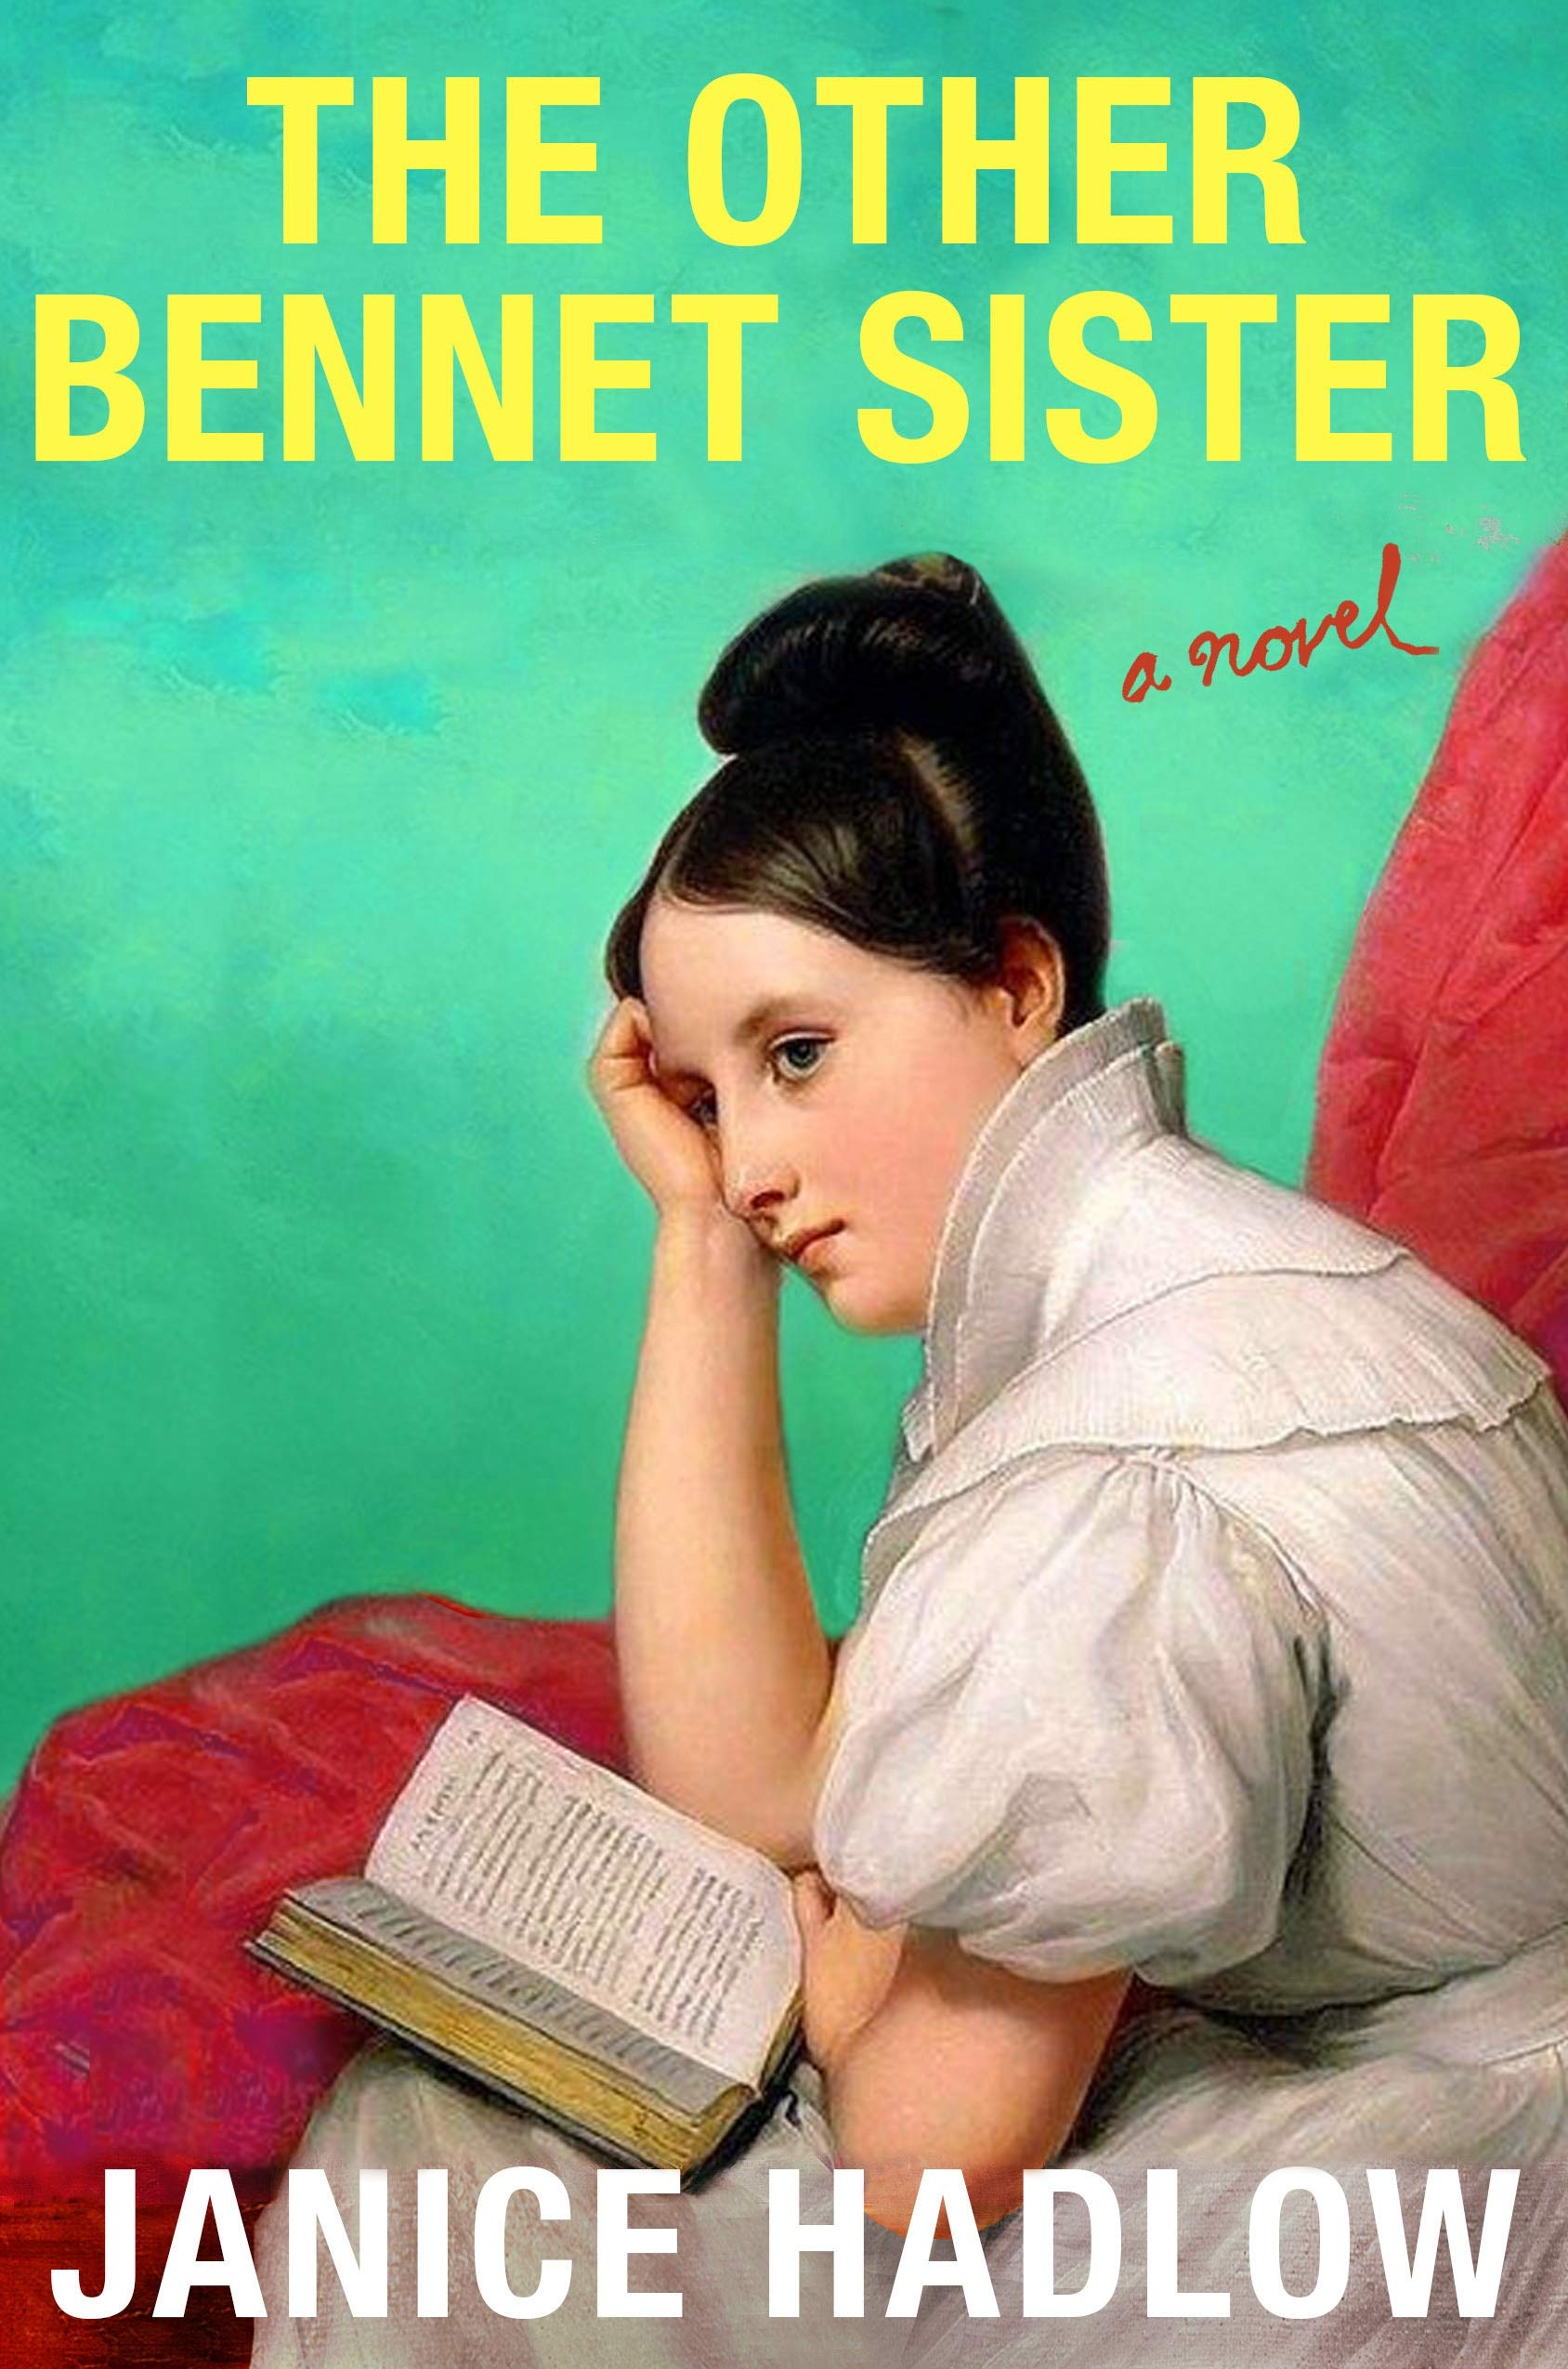 The Other Bennet Sister, by Janice Hadlow (2020)